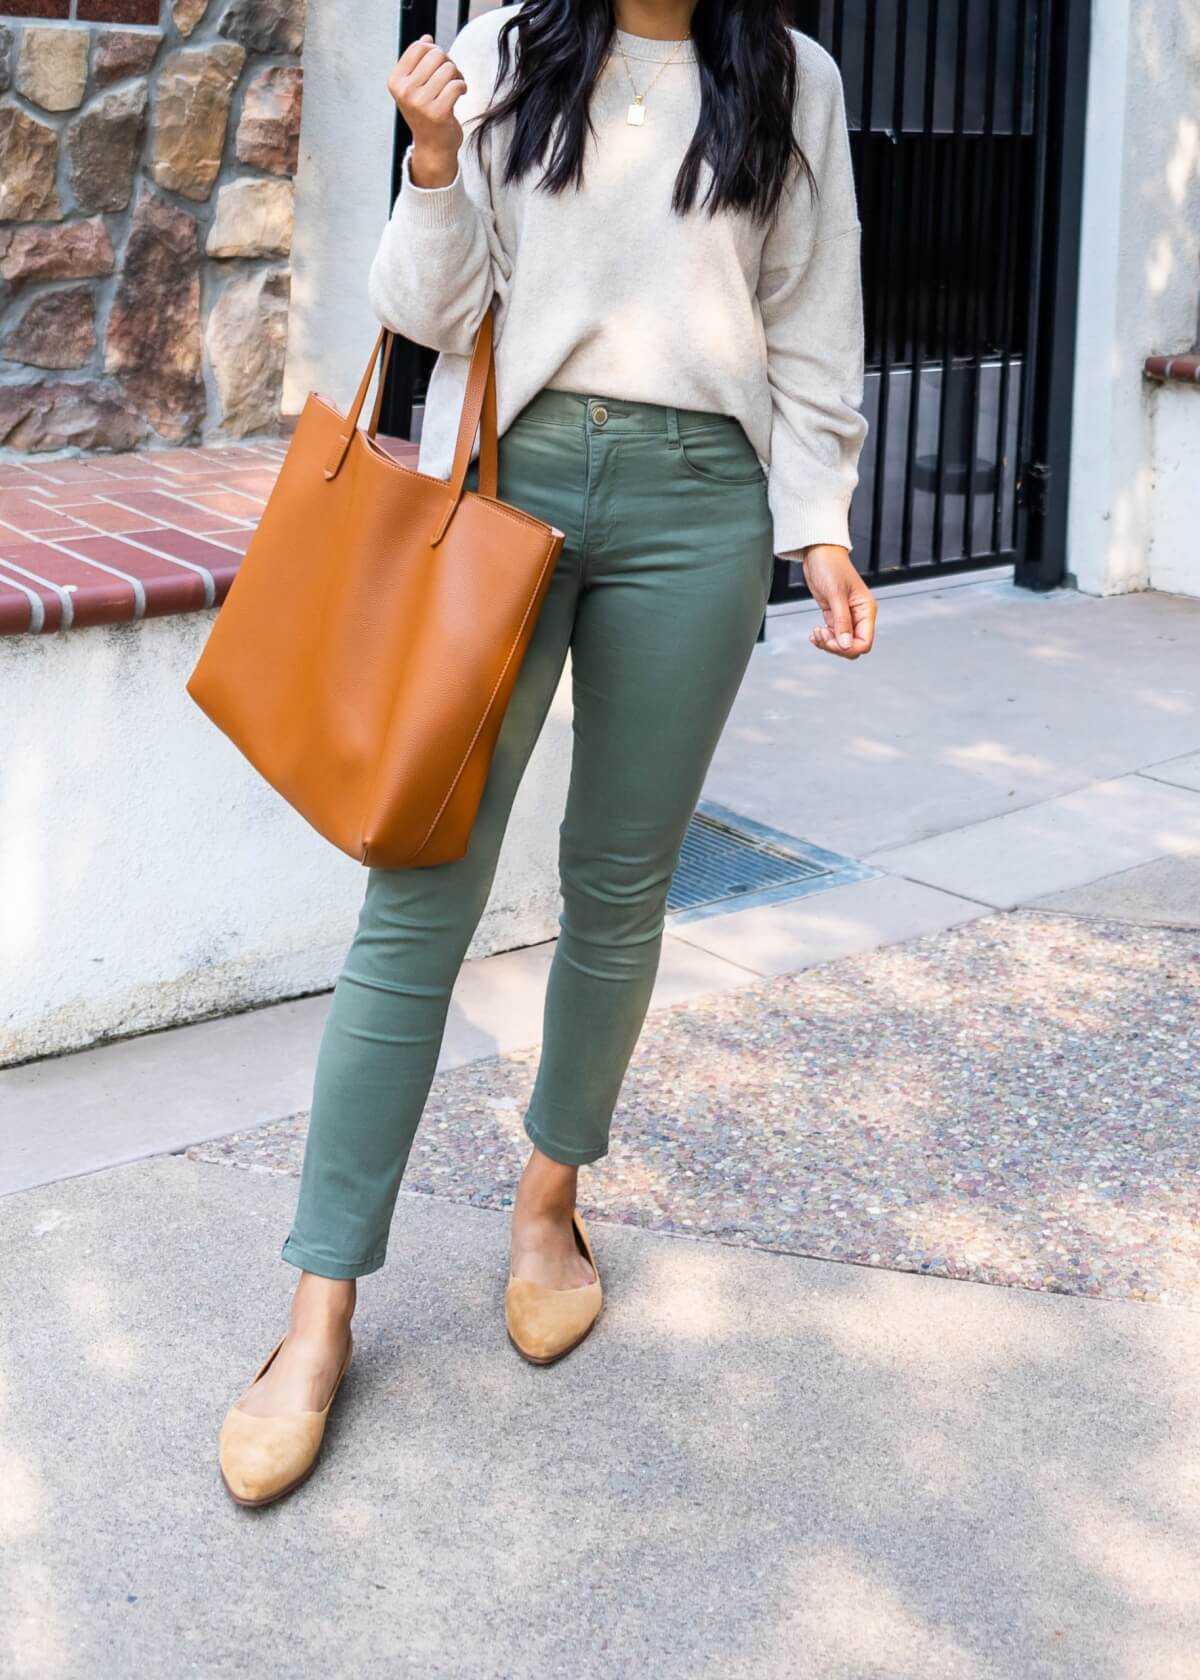 Comfy Casual Work Outfit: Treasure & Bond cream sweater + Wit & Wisdom olive green ankle pants + gold pendant necklace + tan suede flats + tan tote close up